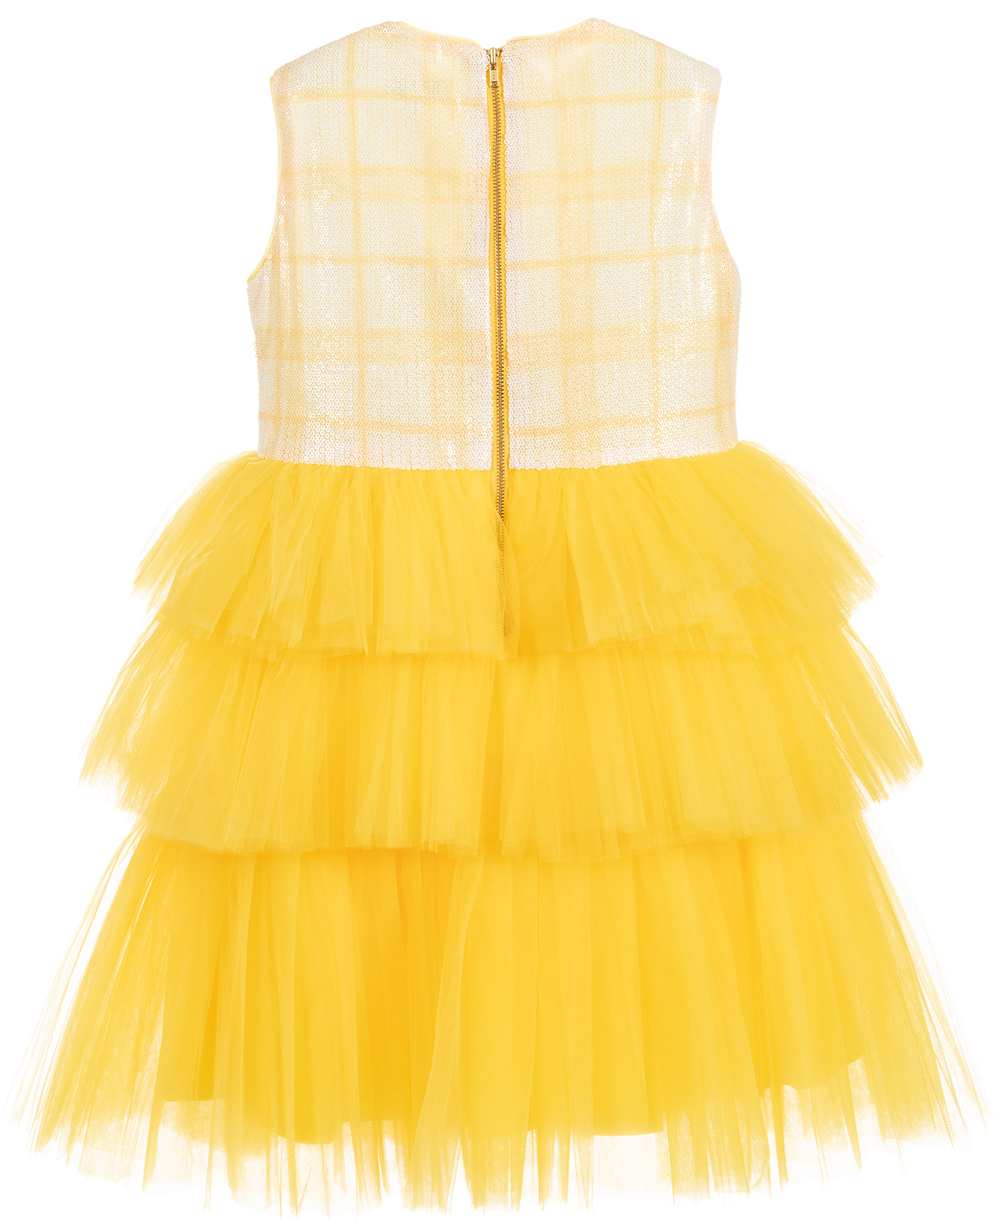 White & Yellow Layered Sleeveless Tulle Dress Sequin Party Dress